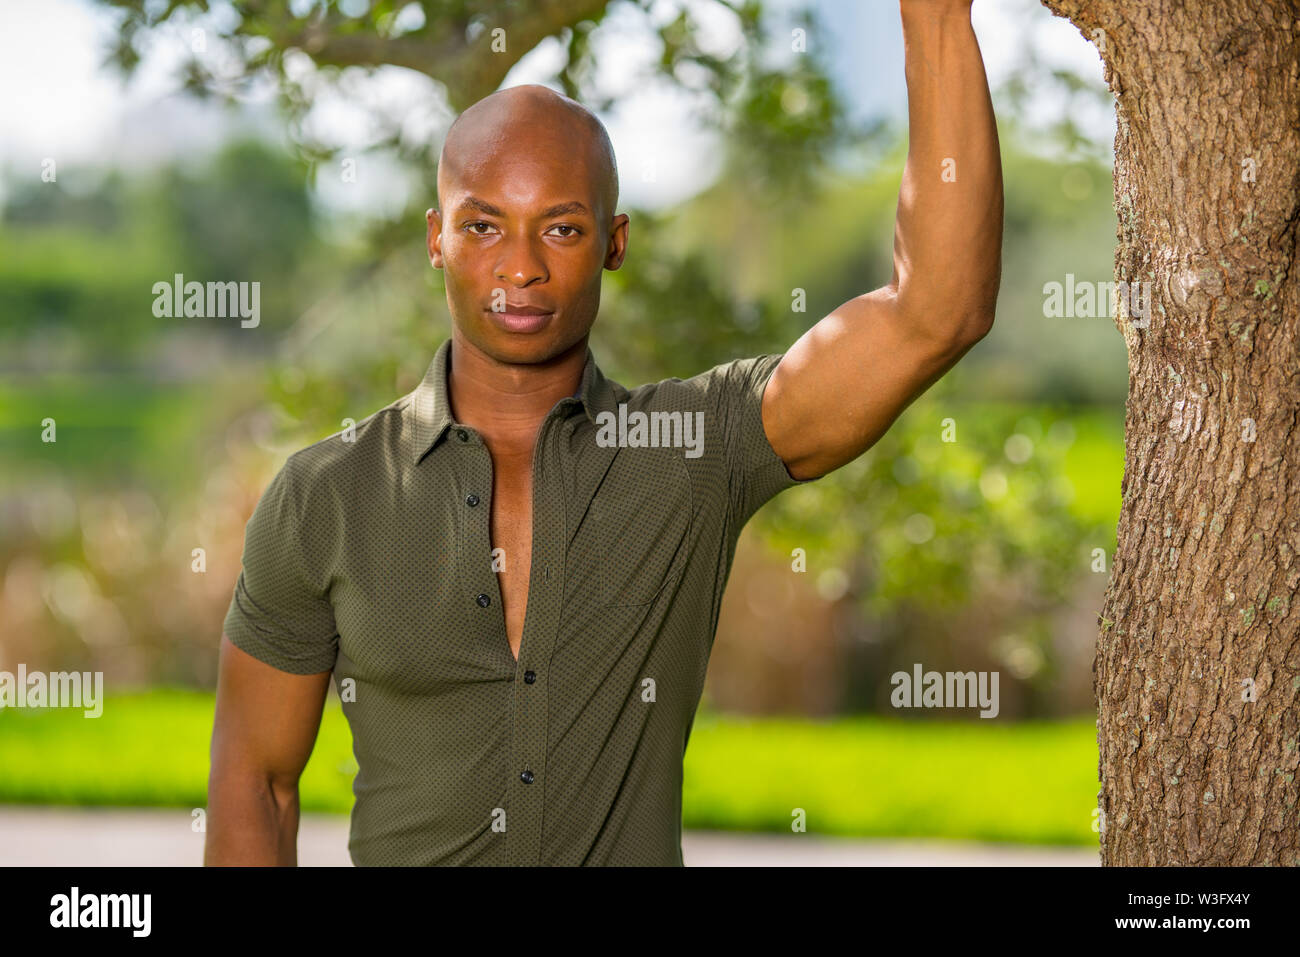 Handsome young African American man posing with hand on tree in the park. Mans shirt is unbuttoned to show chest as man lookg at camera - Stock Image